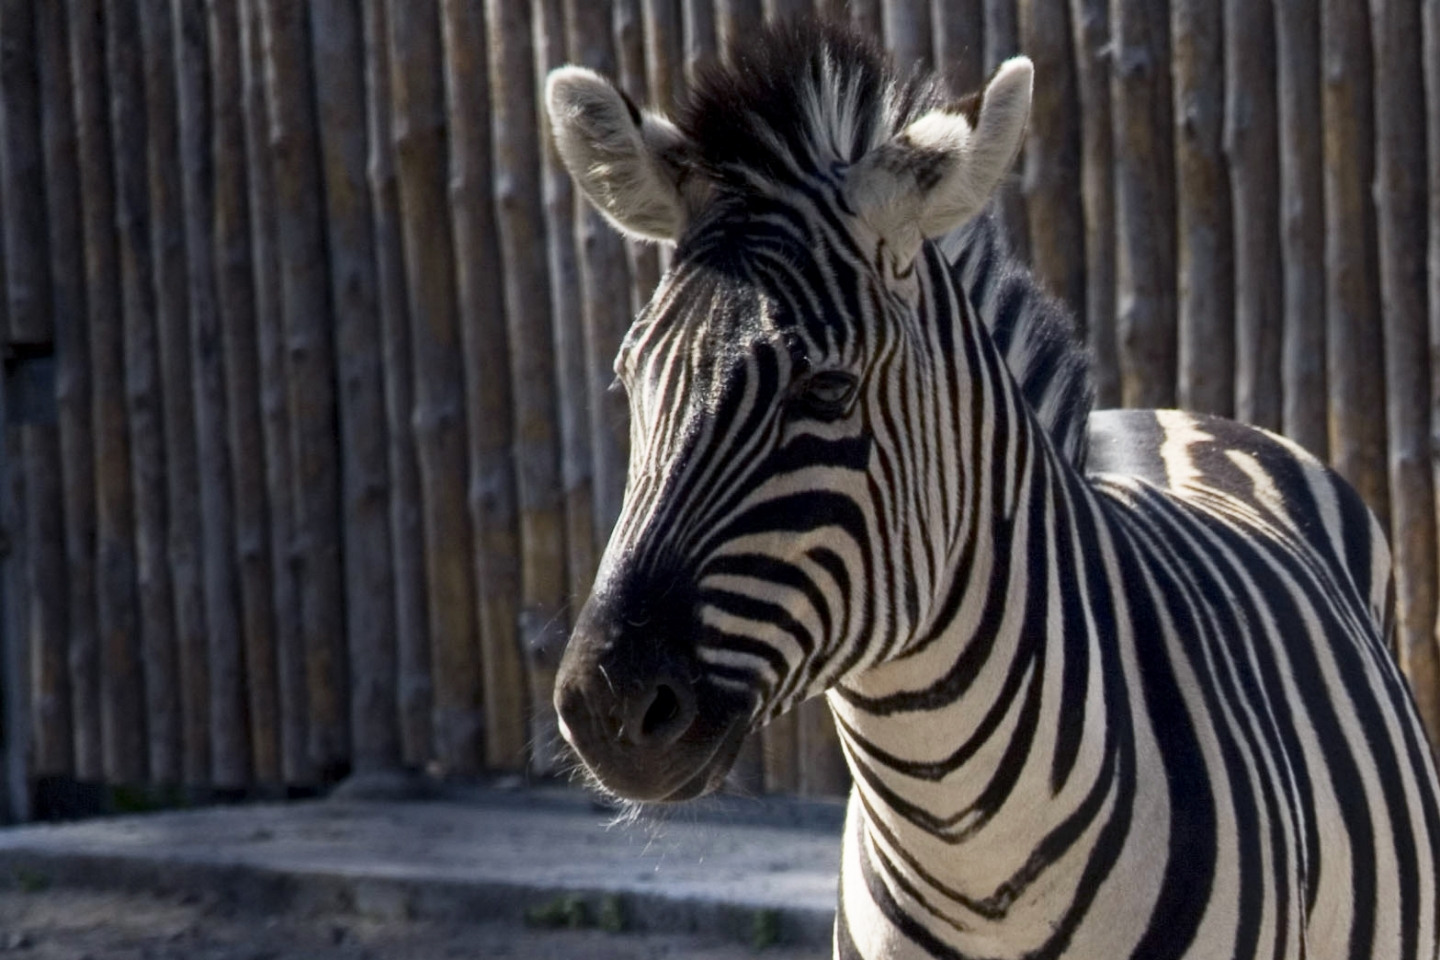 8194 download wallpaper Animals, Zebra screensavers and pictures for free